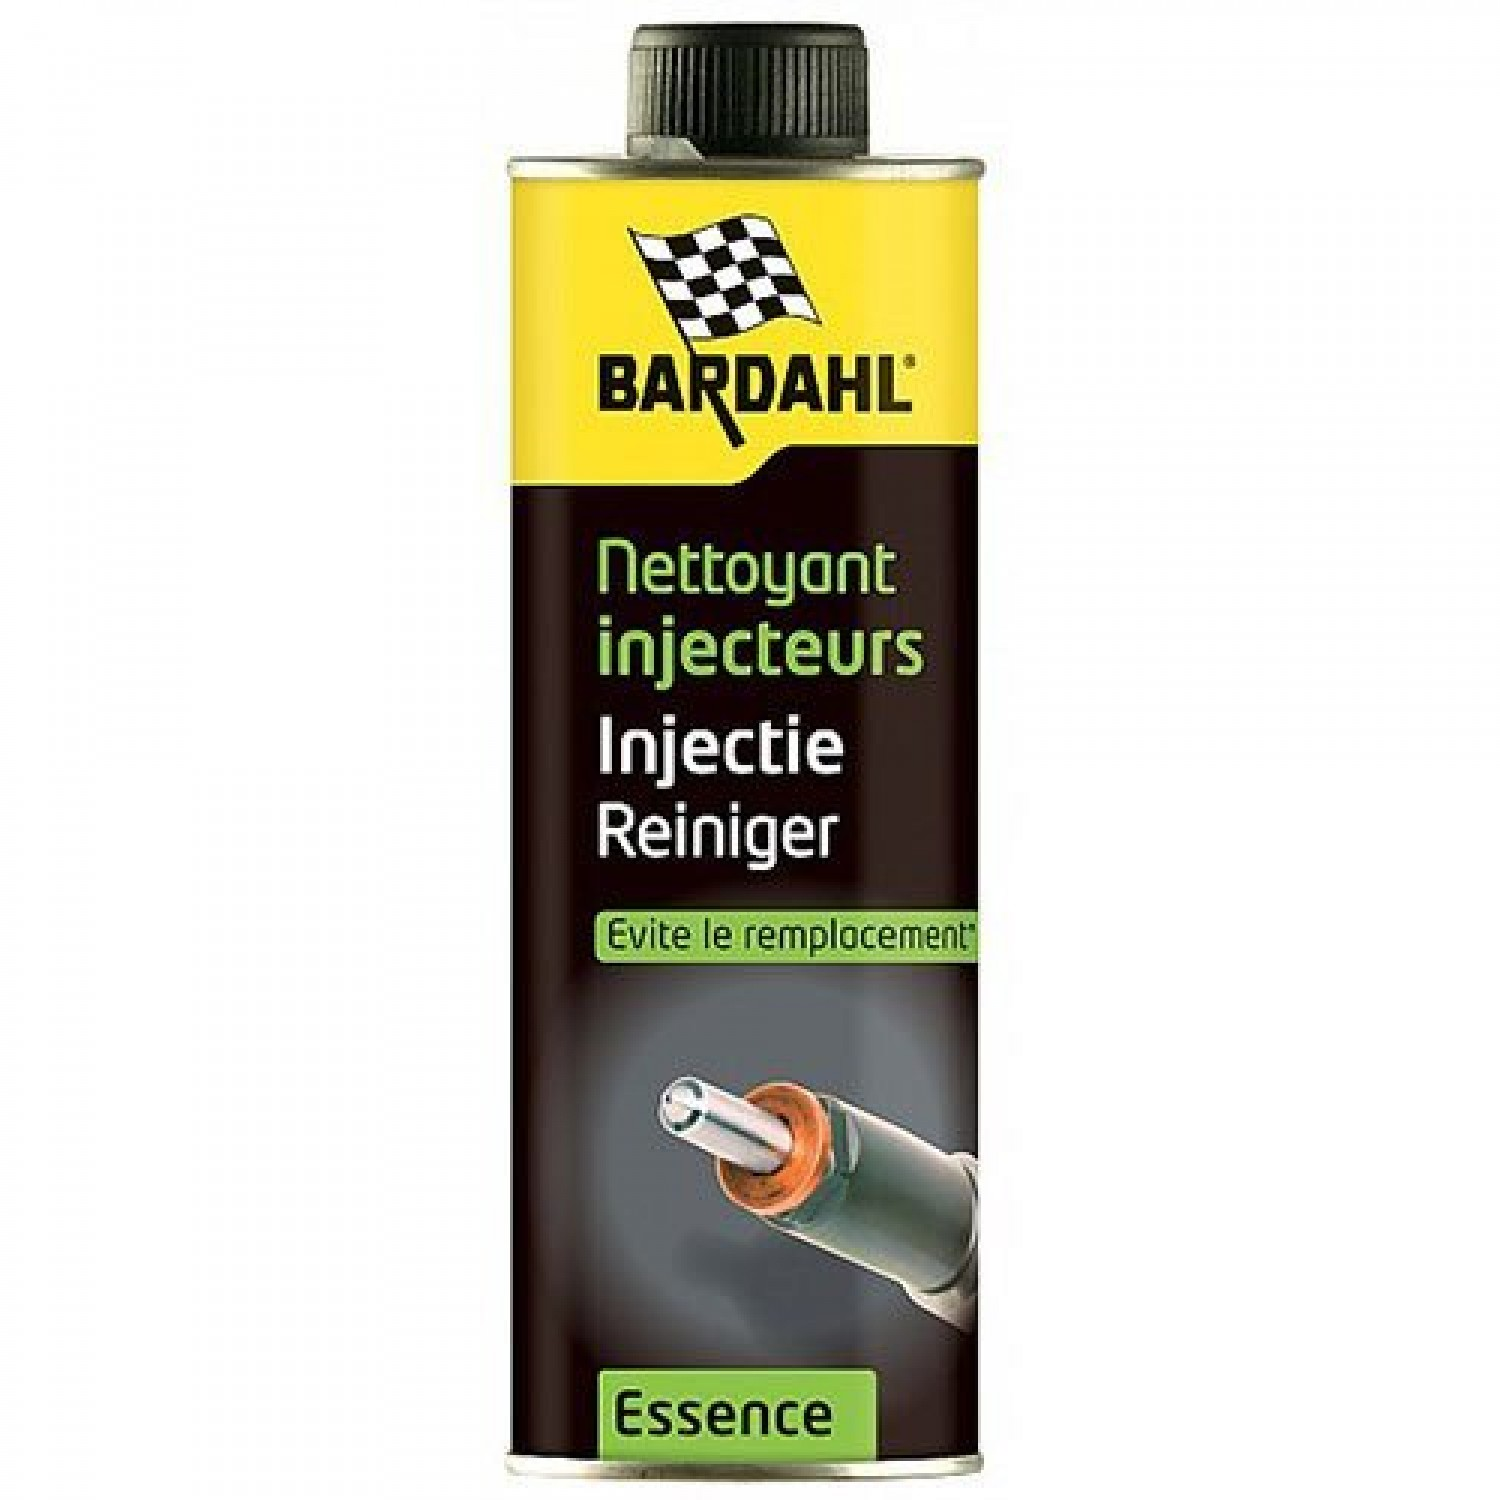 BARDAHL INJECTOR CLEANER 6 IN 1 - 500ml